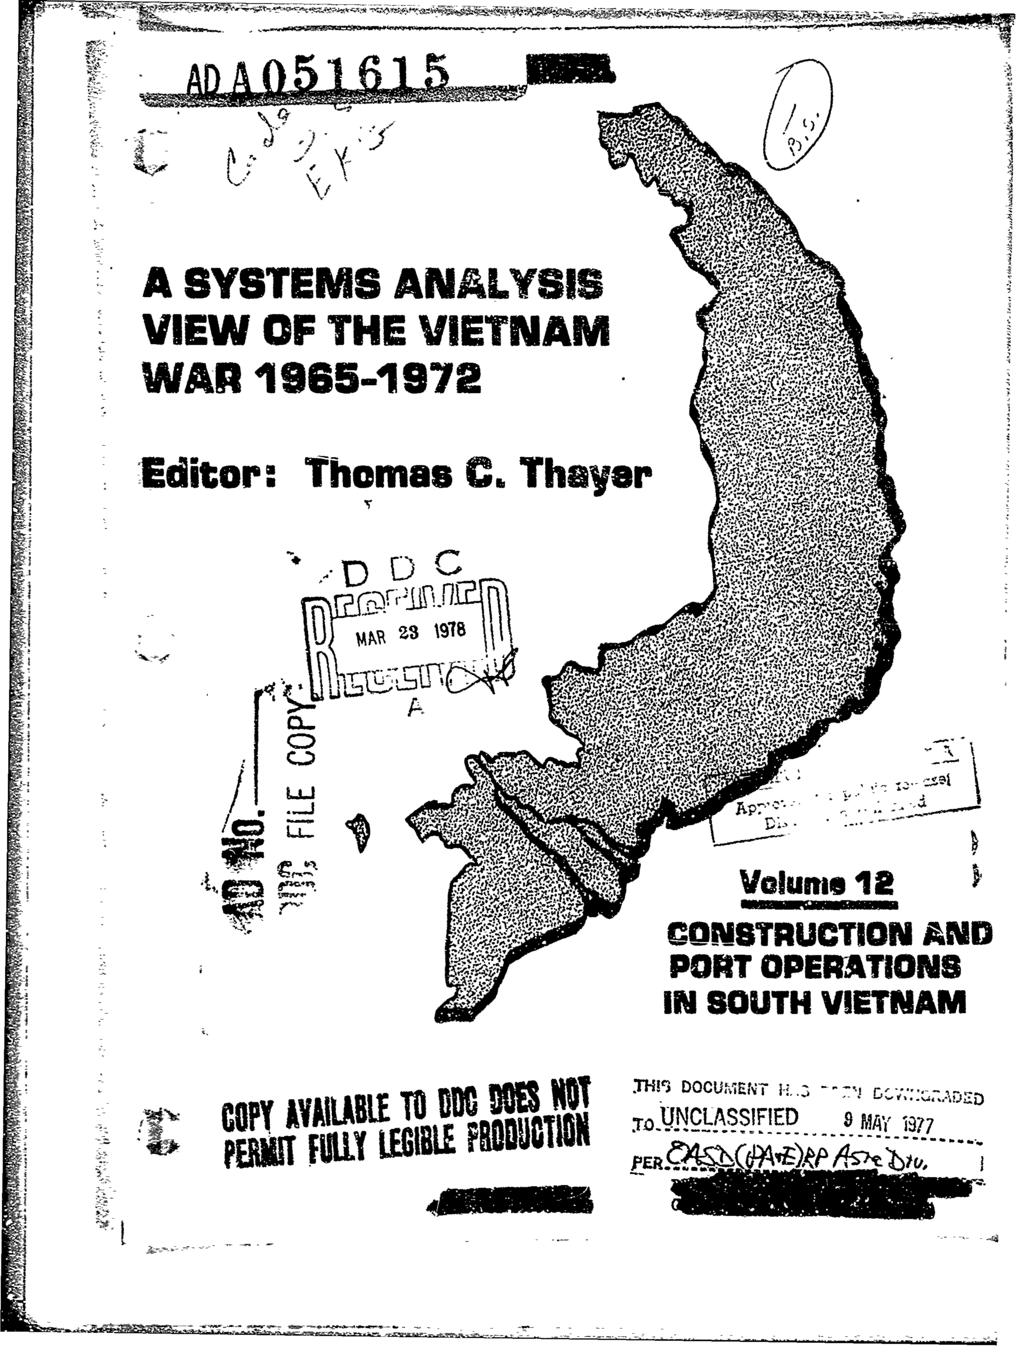 "A SYSTEMS AN ALYTSIS VIEW OF THE VIETNAM WSAR 1965-1972W v -Editor: Thomas C.Thayer rip Ur ire*- I..""."